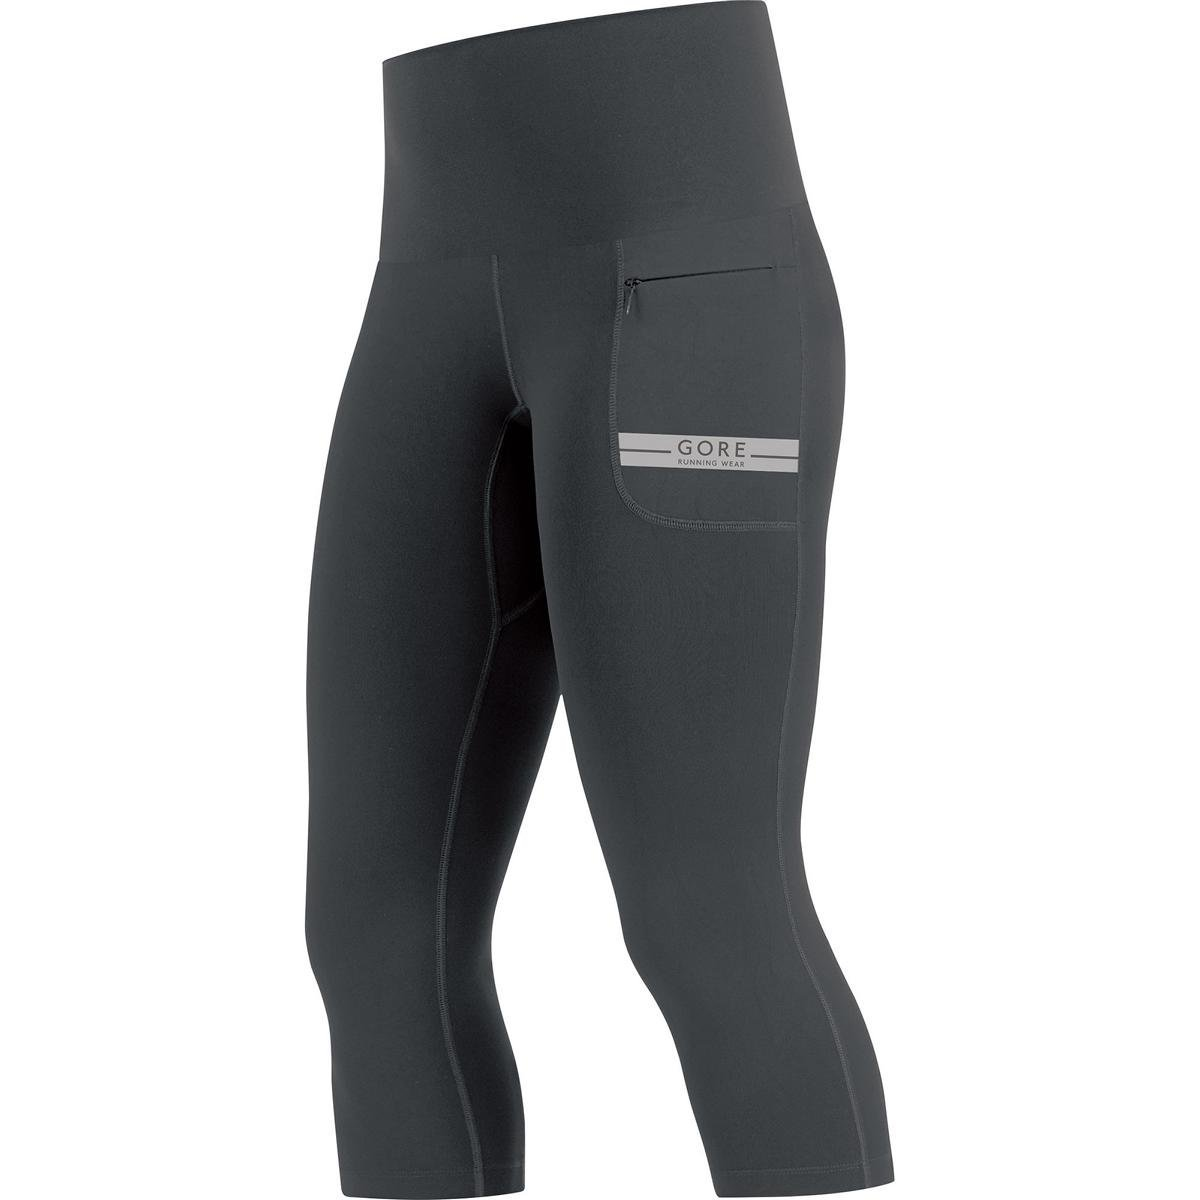 Gore Wear, Mujer, Mallas 3/4 Transpirables para Correr, Gore R5 Women 3/4 Tights, 100007